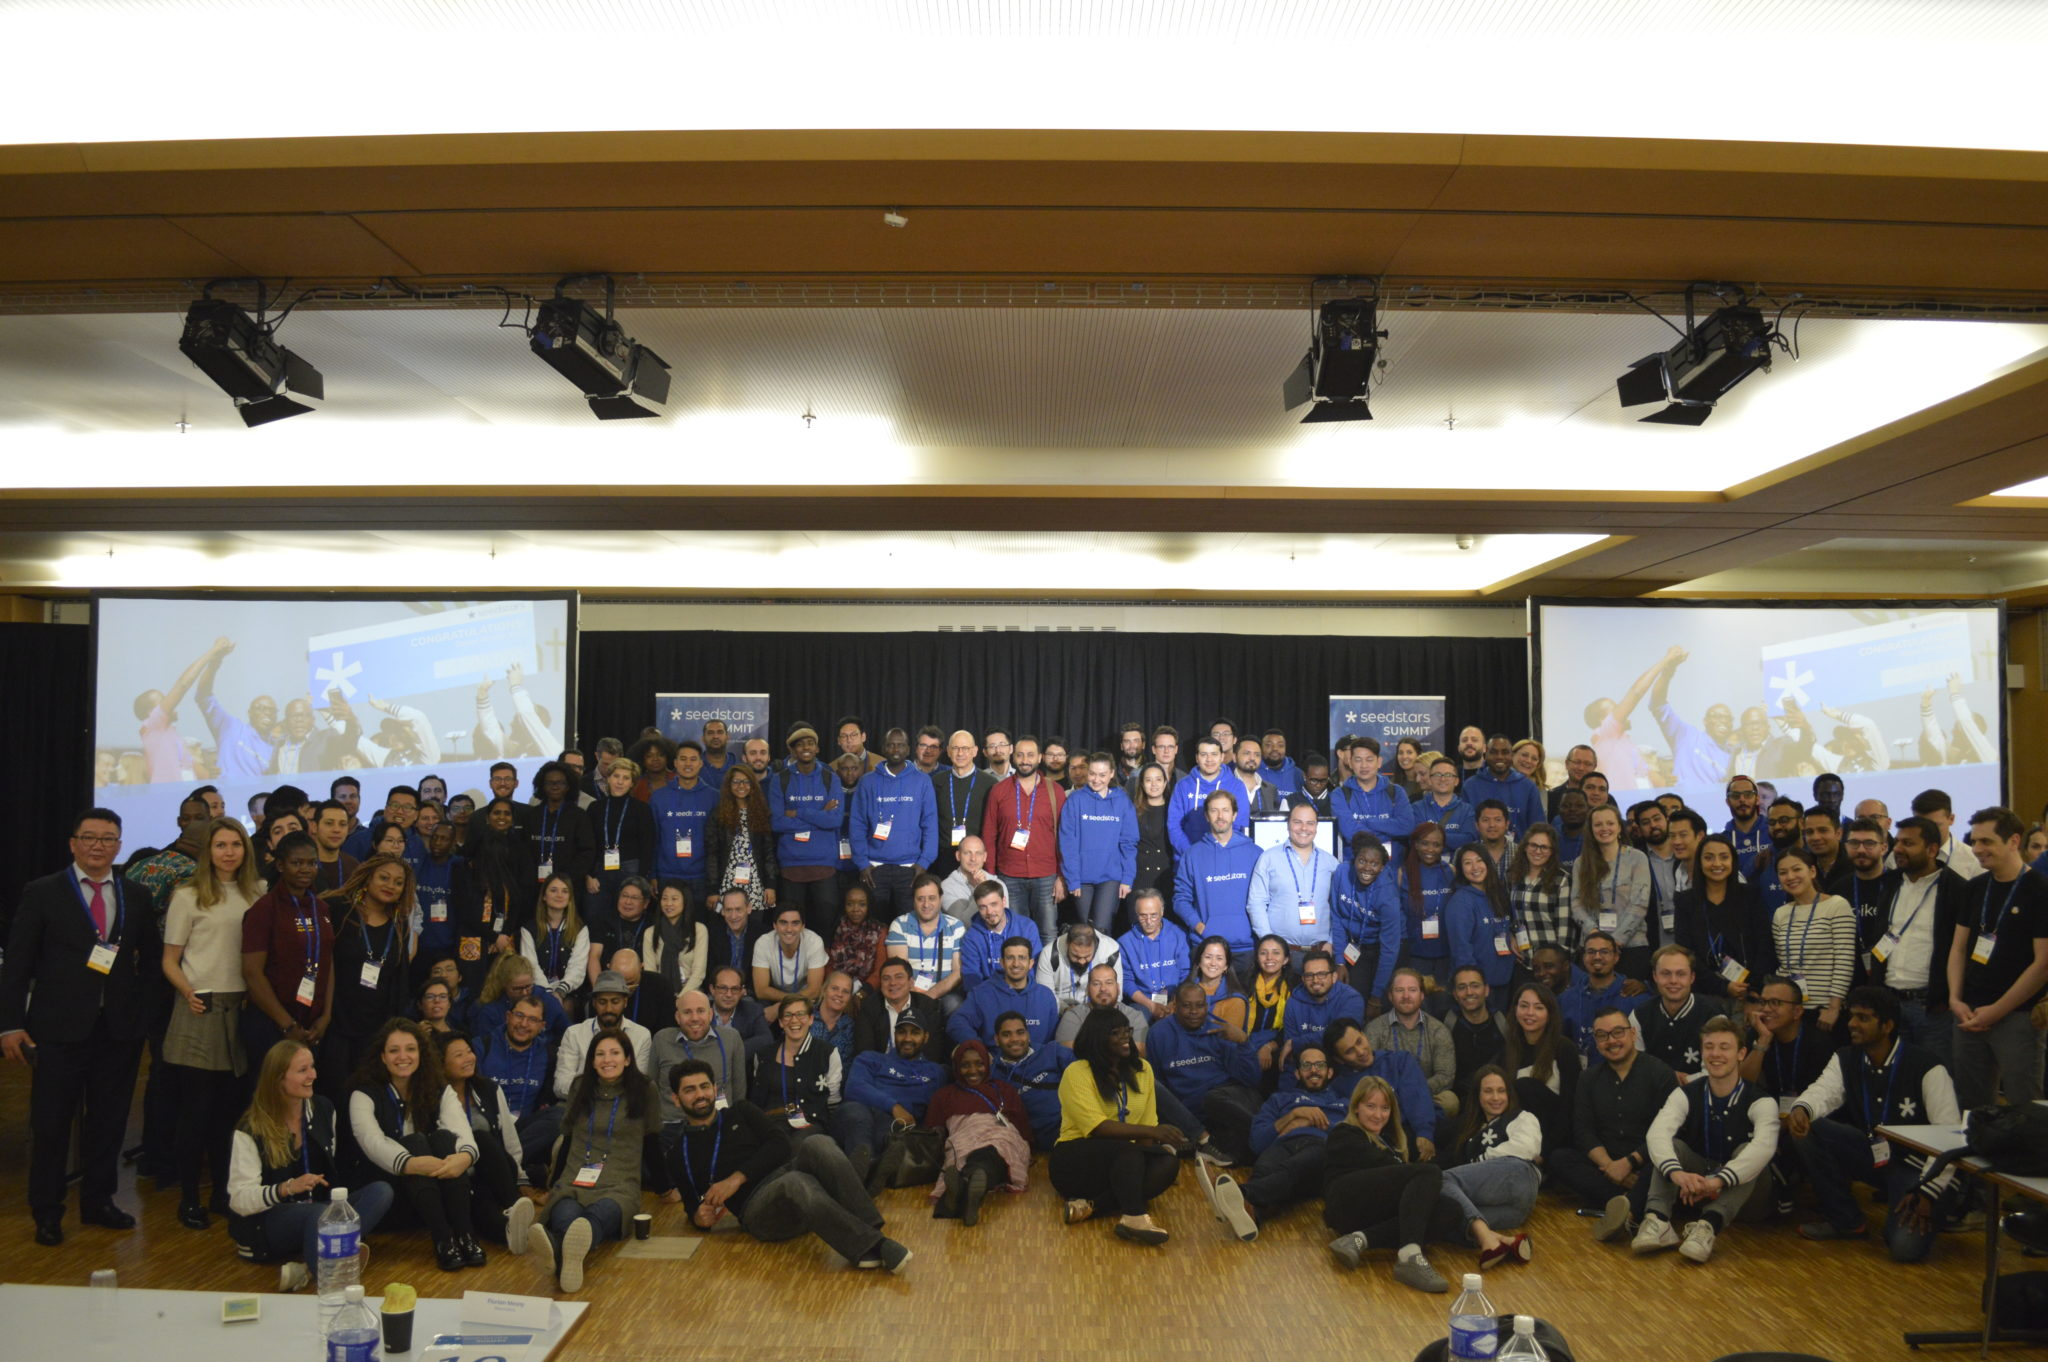 Latin America's entrepreneurs take center stage at this year's Seedstars World Summit